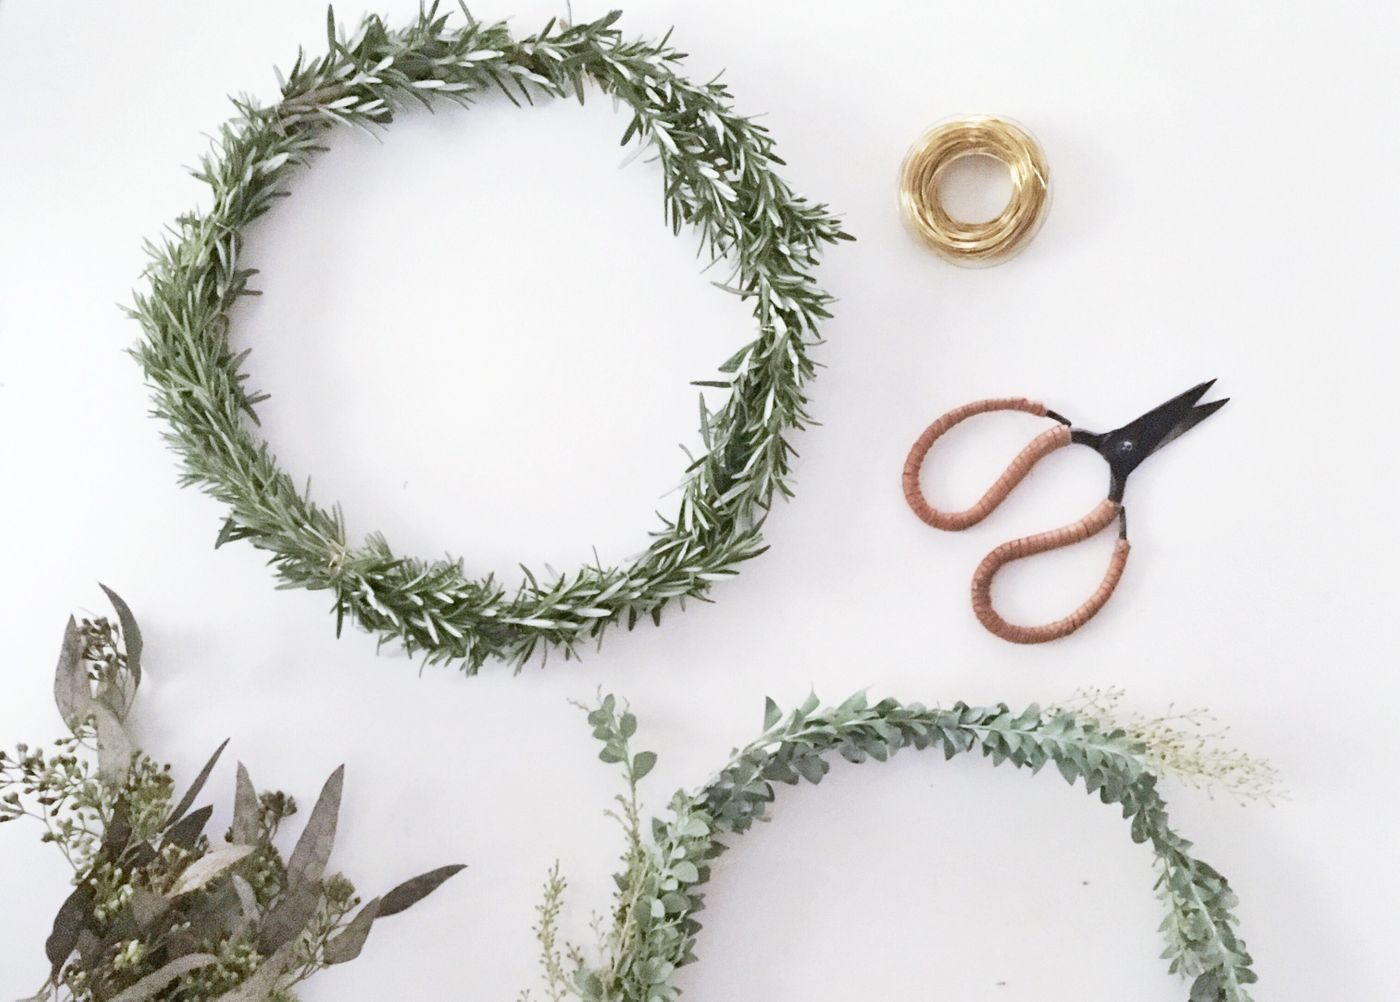 Holiday (Or Everyday) Wreaths